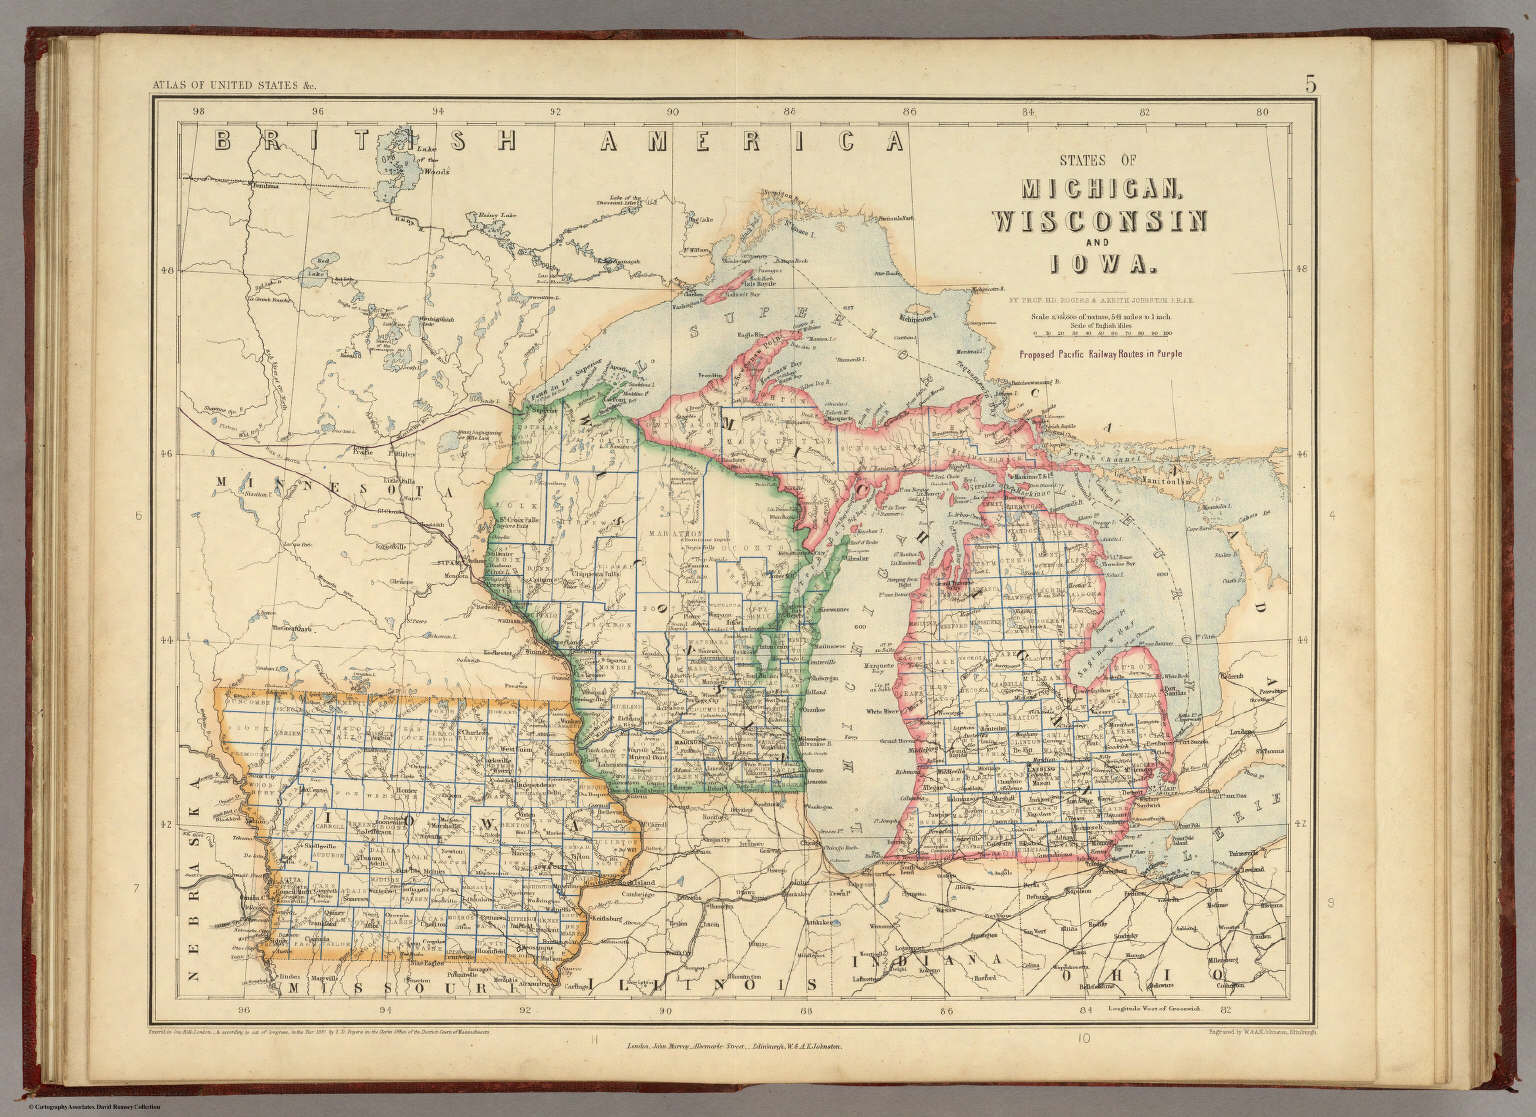 States of Michigan, Wisconsin and Iowa. By Prof. H.D. Rogers & A. Keith Johnston, F.R.S.E. Entered in Sta. Hall. London ... & according to an act of Congress ... 1857, by H.D. Rogers ... Massachusetts. London, John Murray, Albemarle Street, Edinburgh, W. & A.K. Johnston. Engraved by W. & A.K. Johnston, Edinburgh.